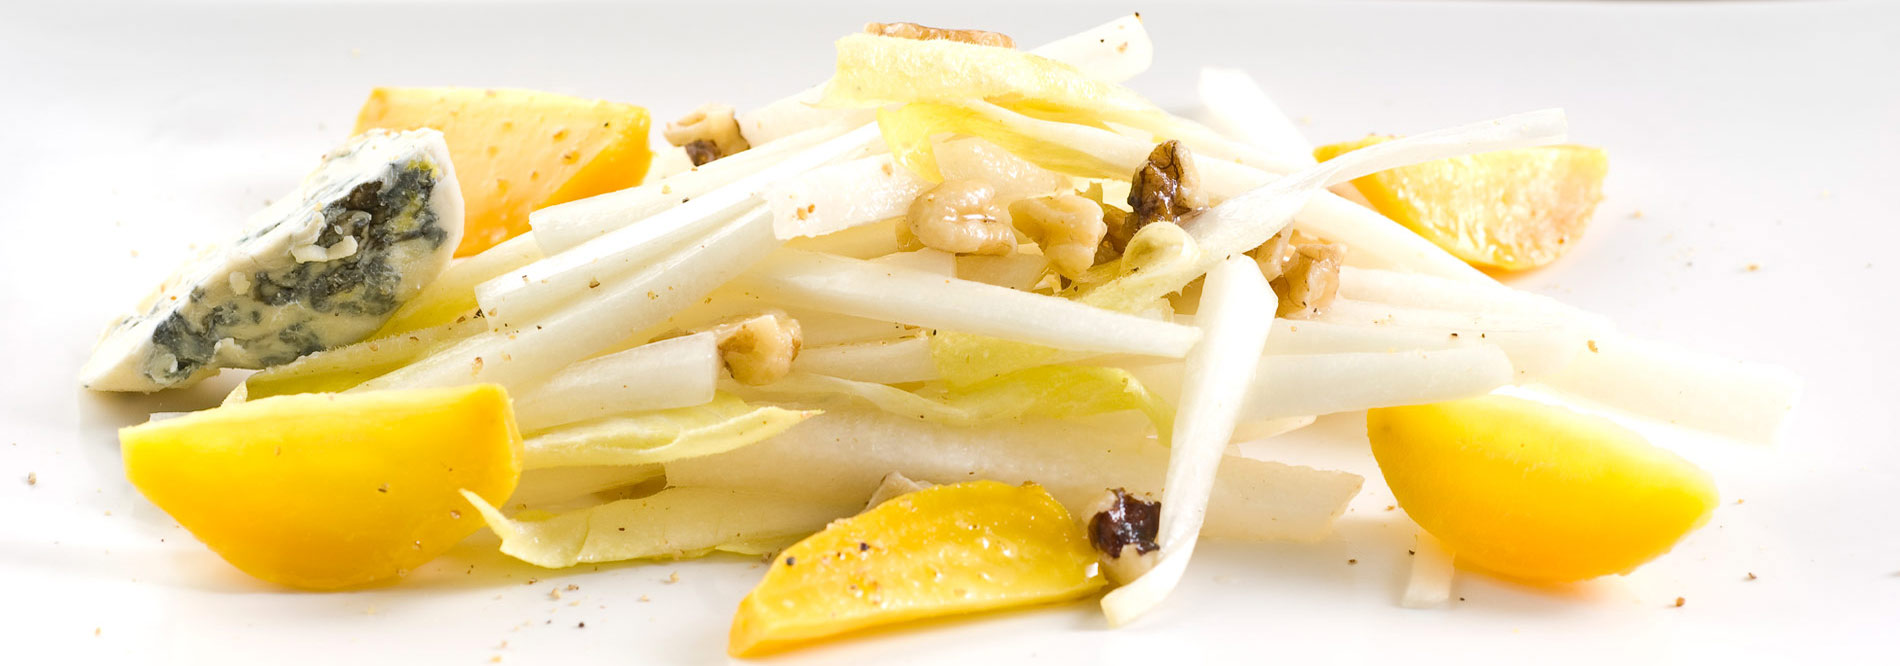 JI.071 Belgian endive with golden beets, Fourme d'Ambert bleu cheese and toasted walnuts